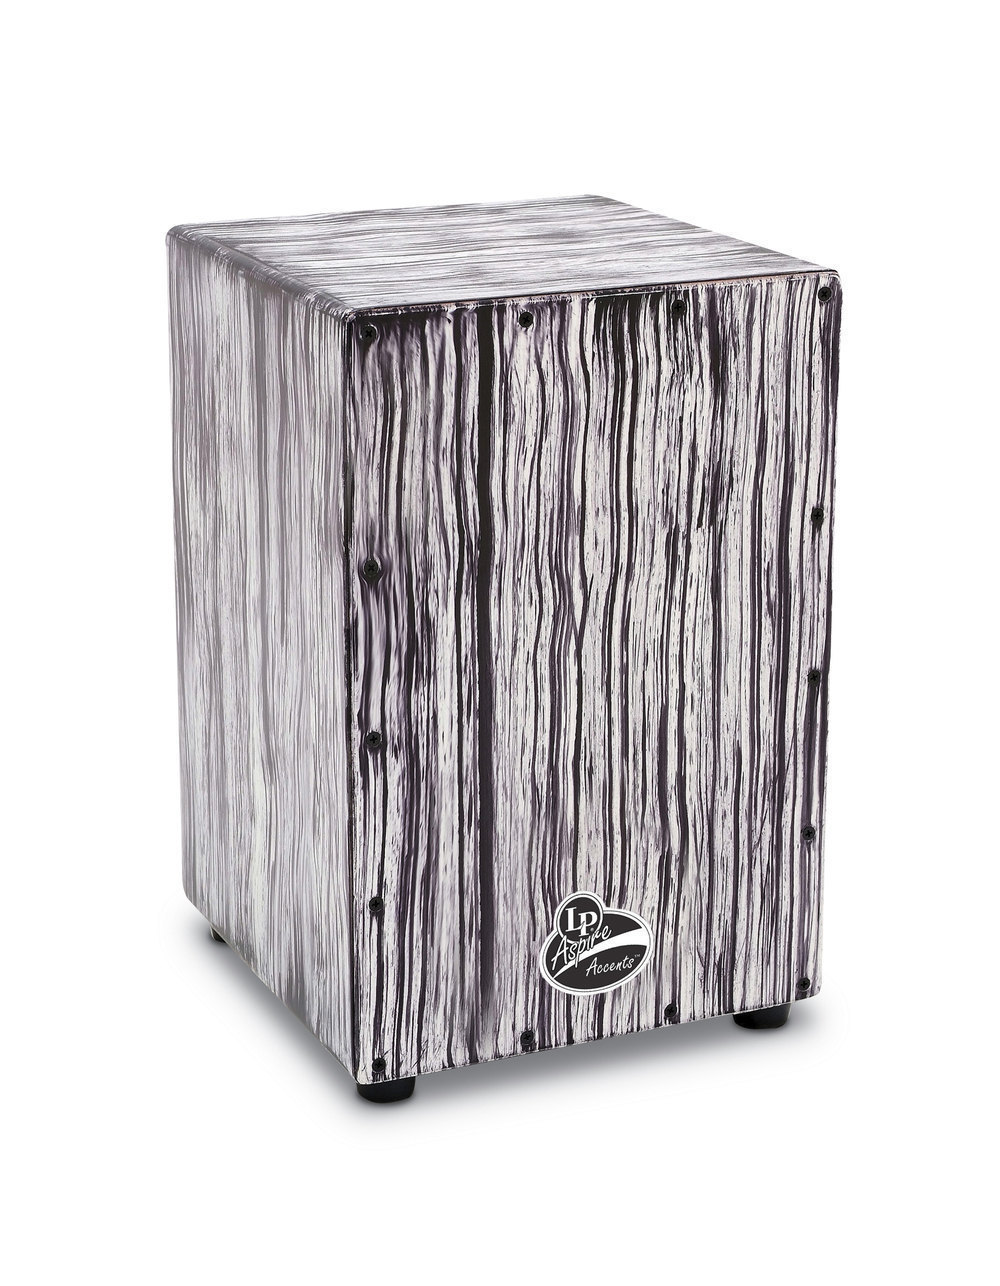 Image of   LP Aspire Accents White Streak Cajon